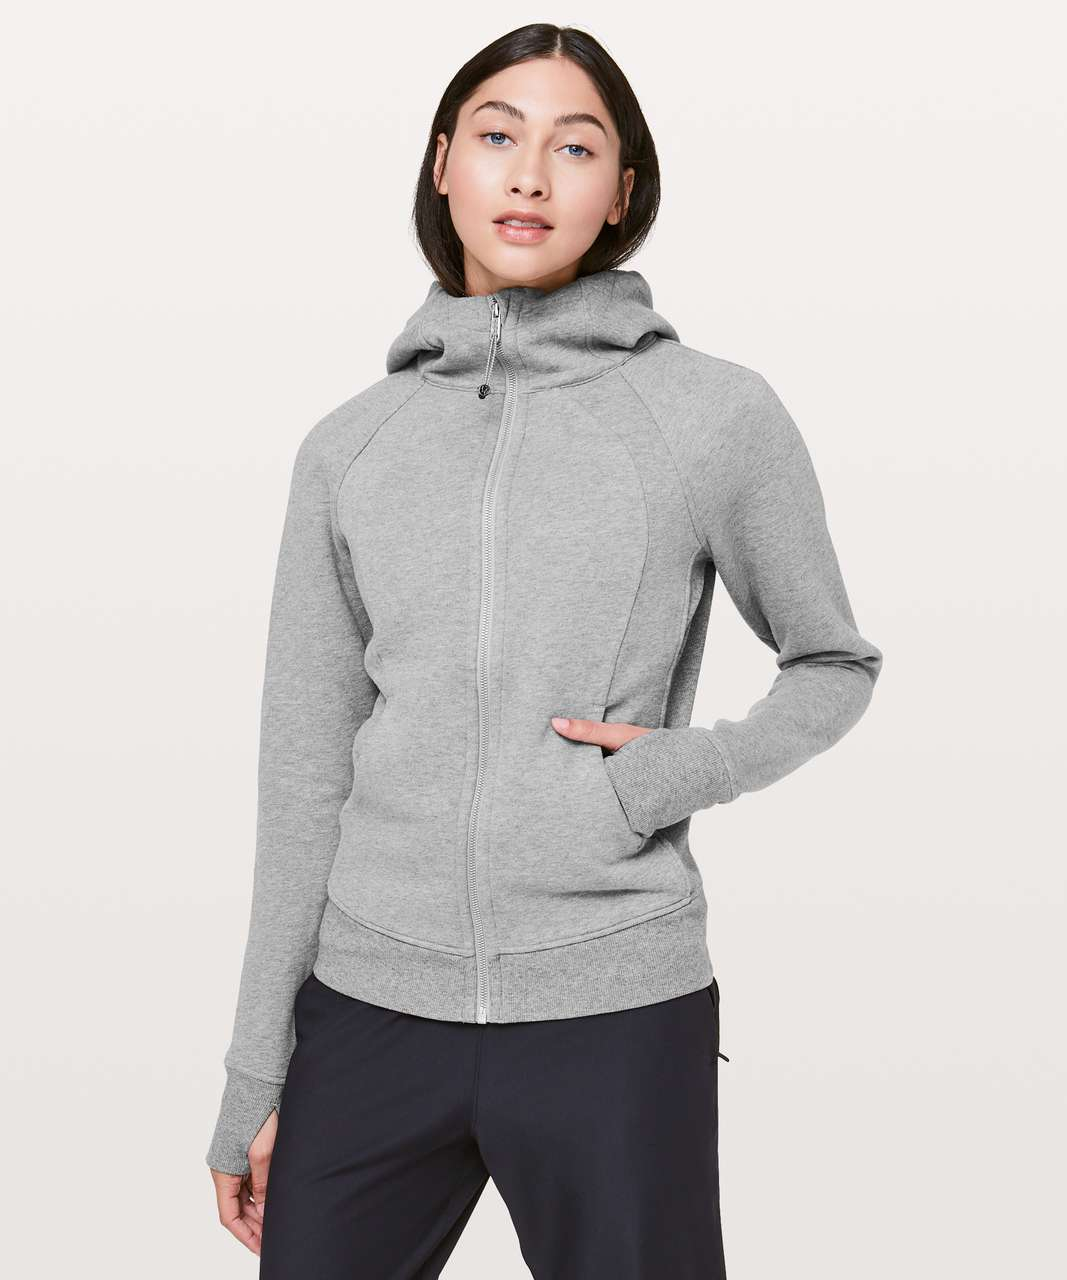 Lululemon Scuba Hoodie *Light Cotton Fleece - Heathered Core Medium Grey / Raceway Grey